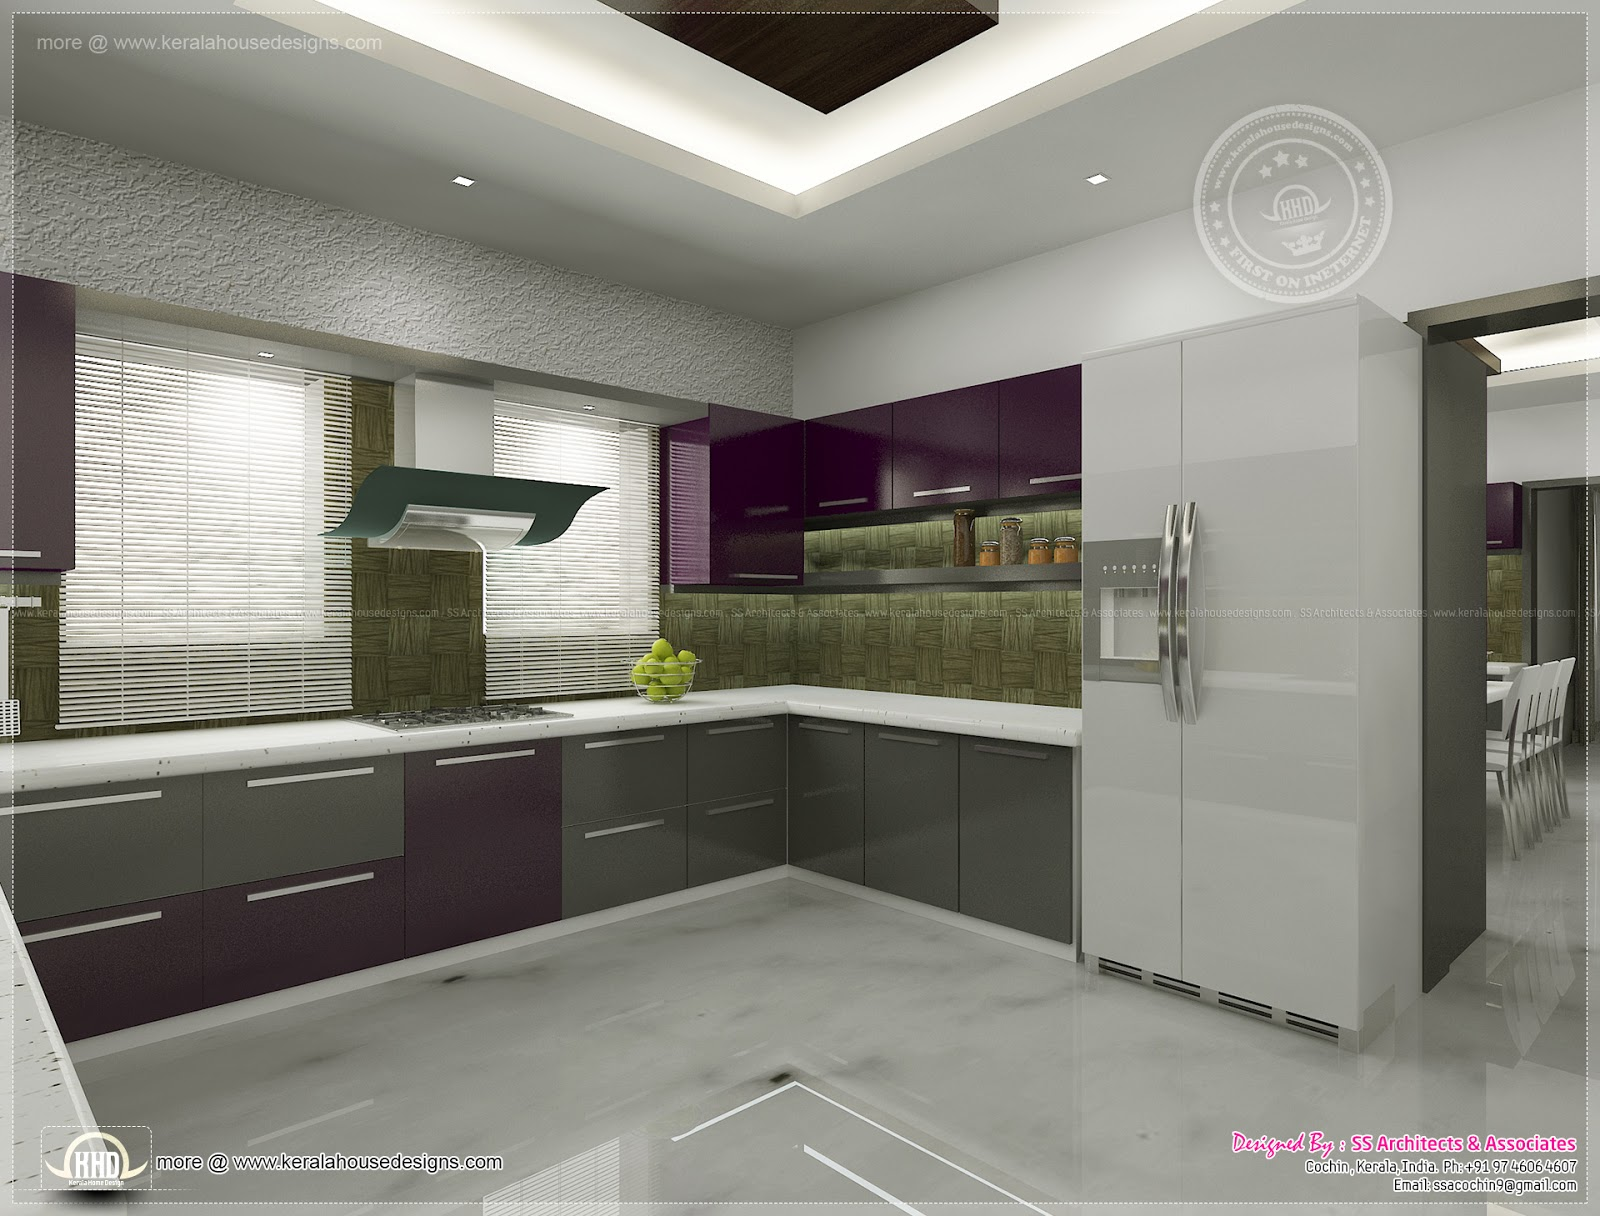 interior design kitchen outdoor counter views by ss architects cochin kerala